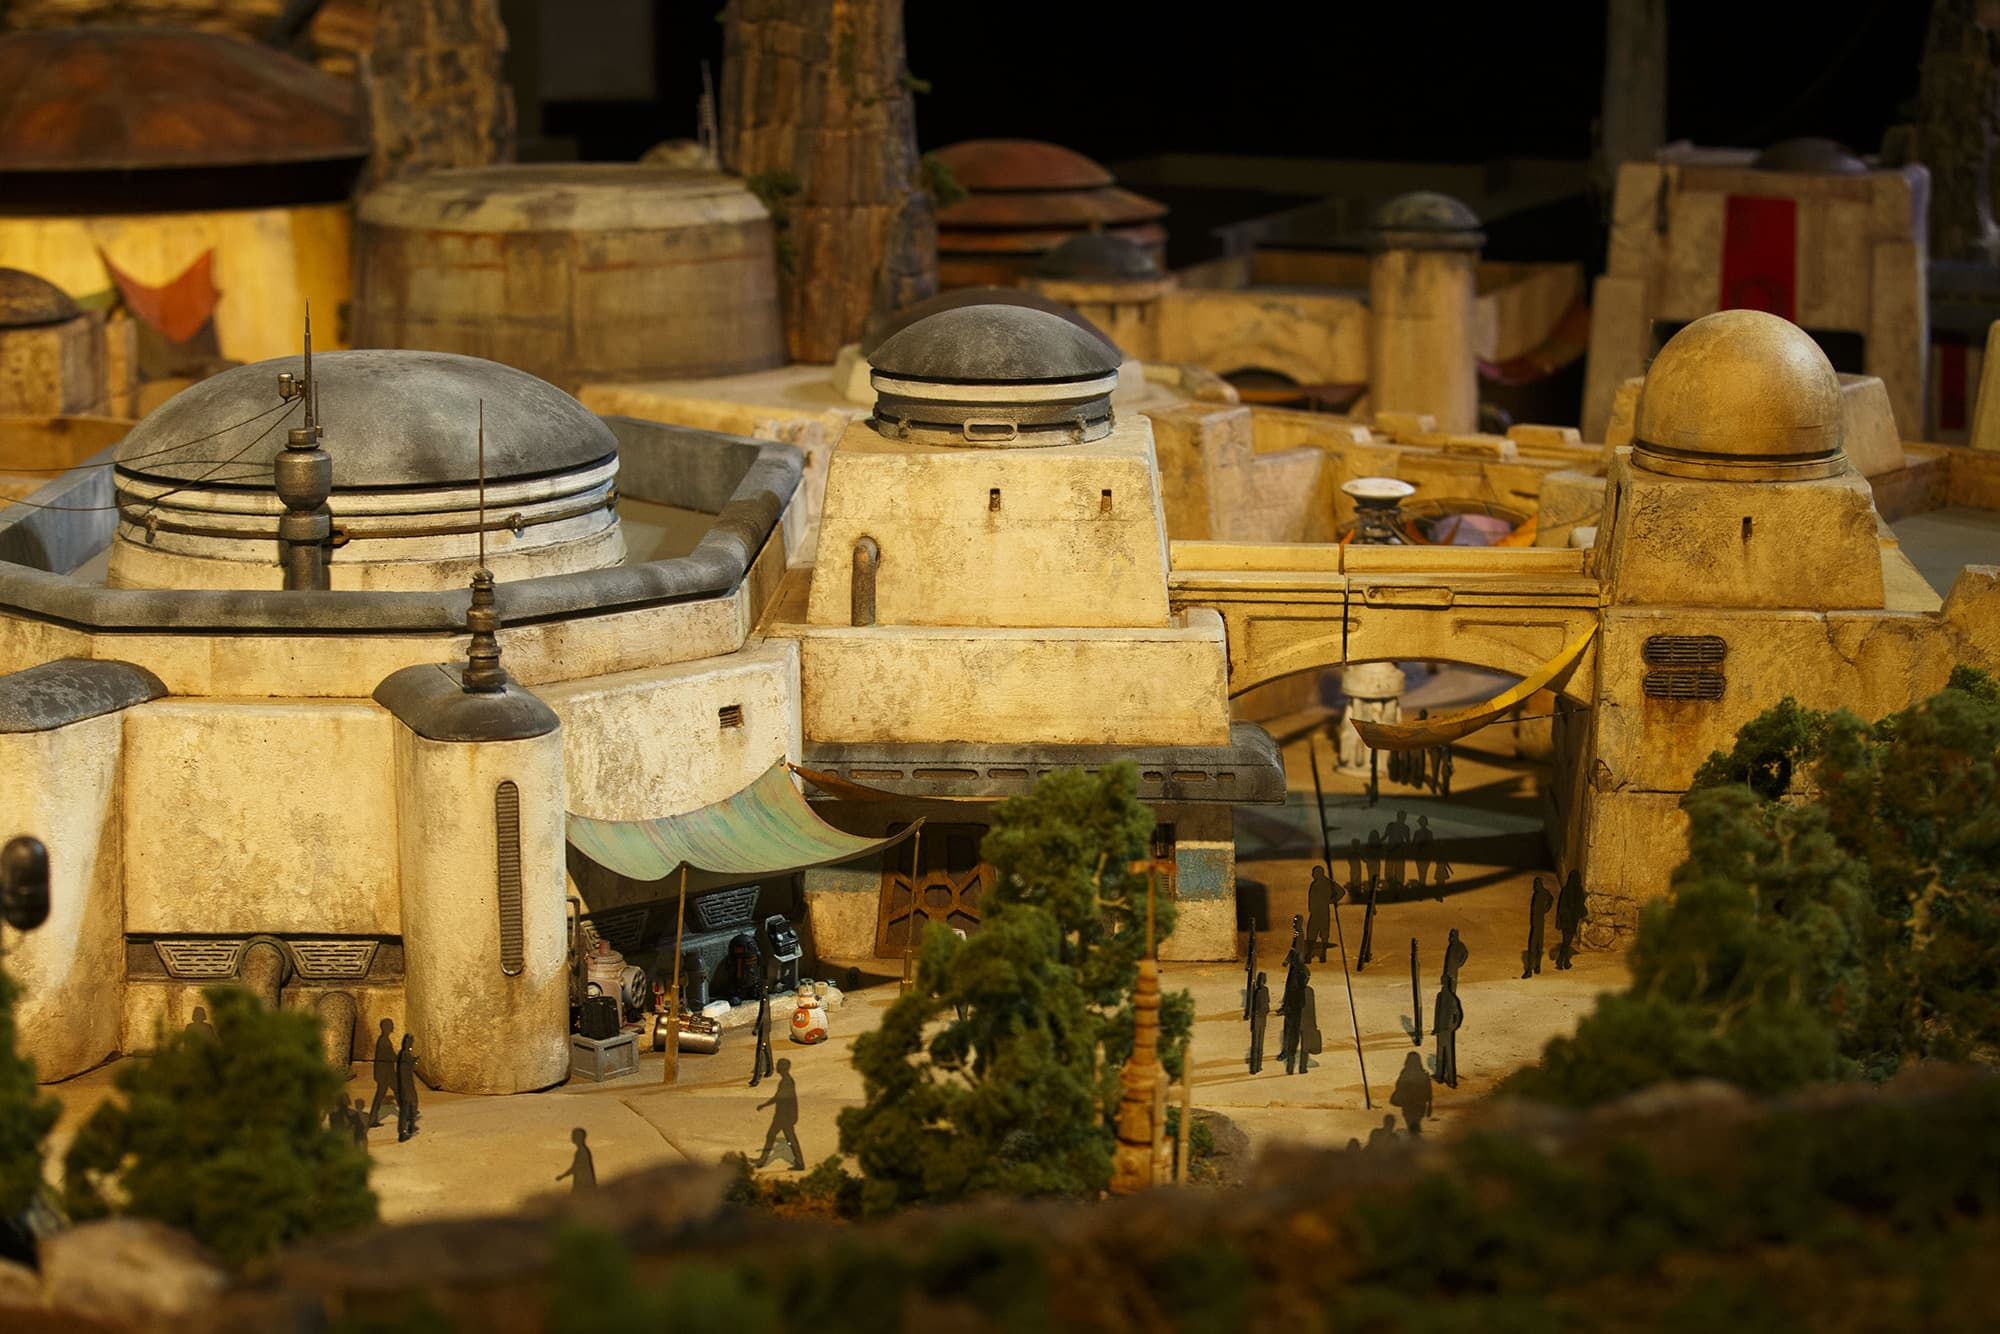 New 'Star Wars' attractions set to open at Disney theme parks in 2019